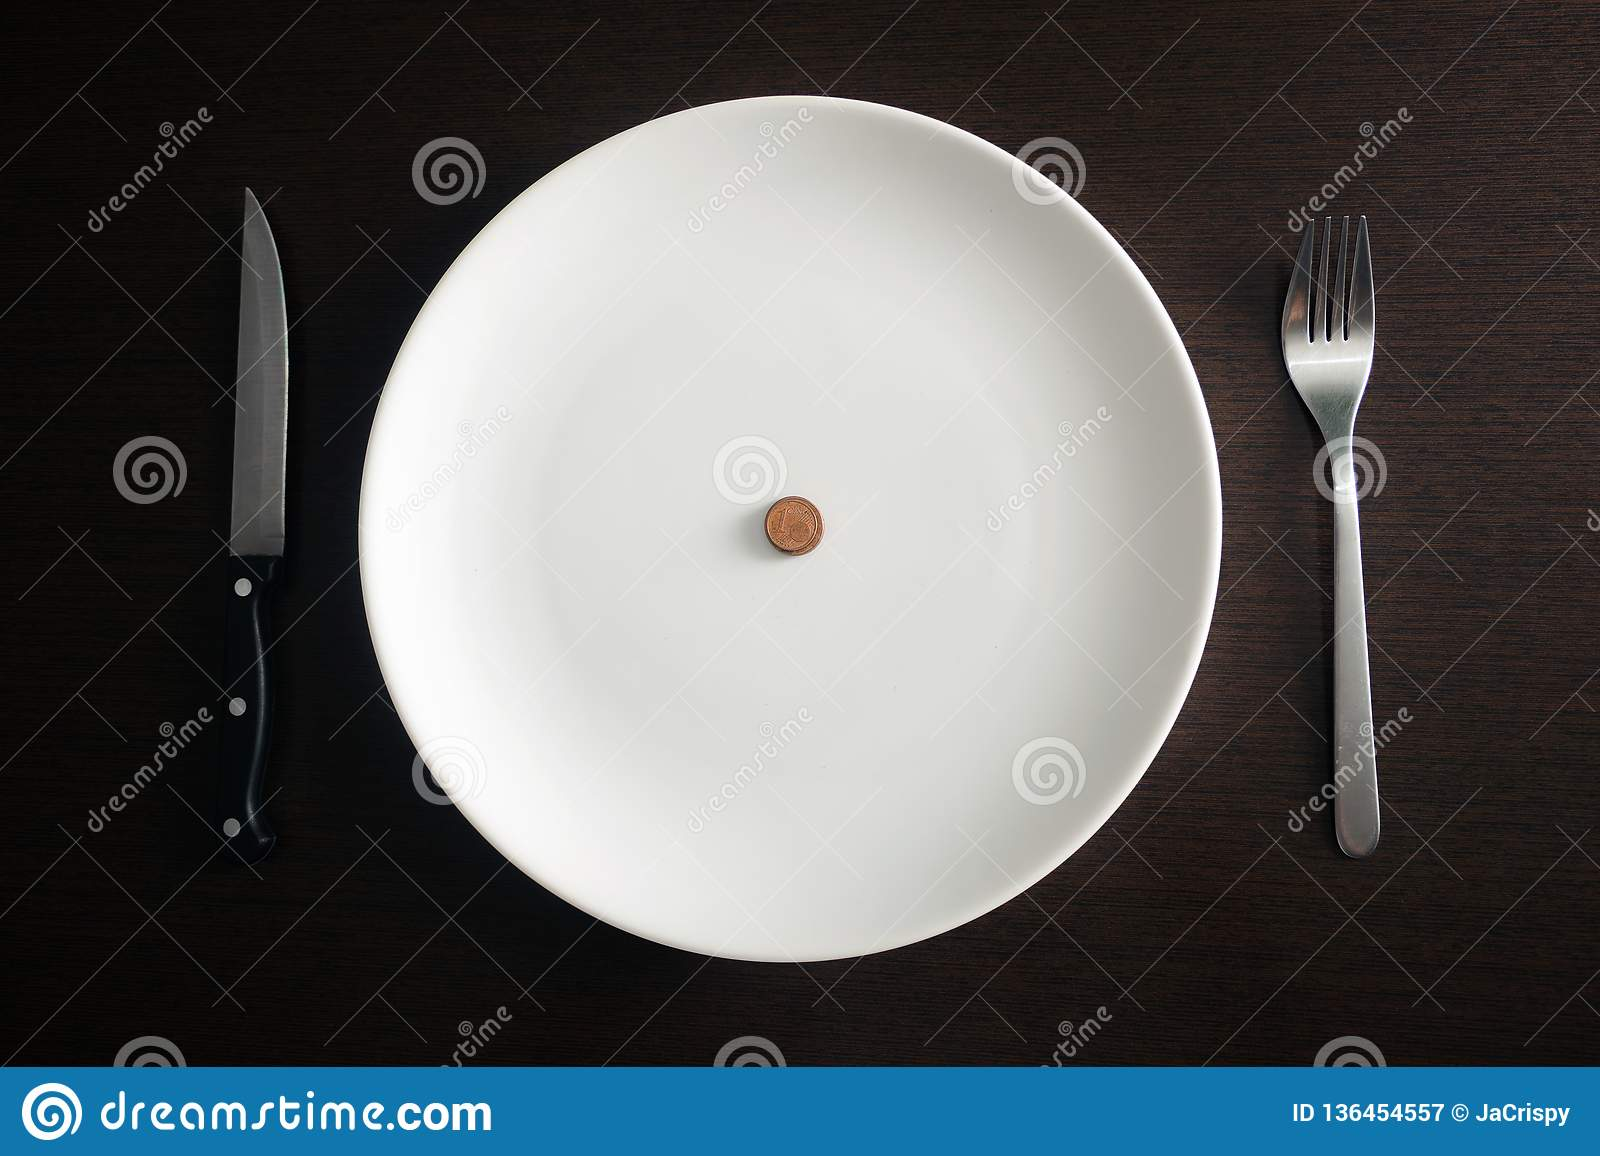 Healthy food, poverty, saving money: coins on a white plate at dining room